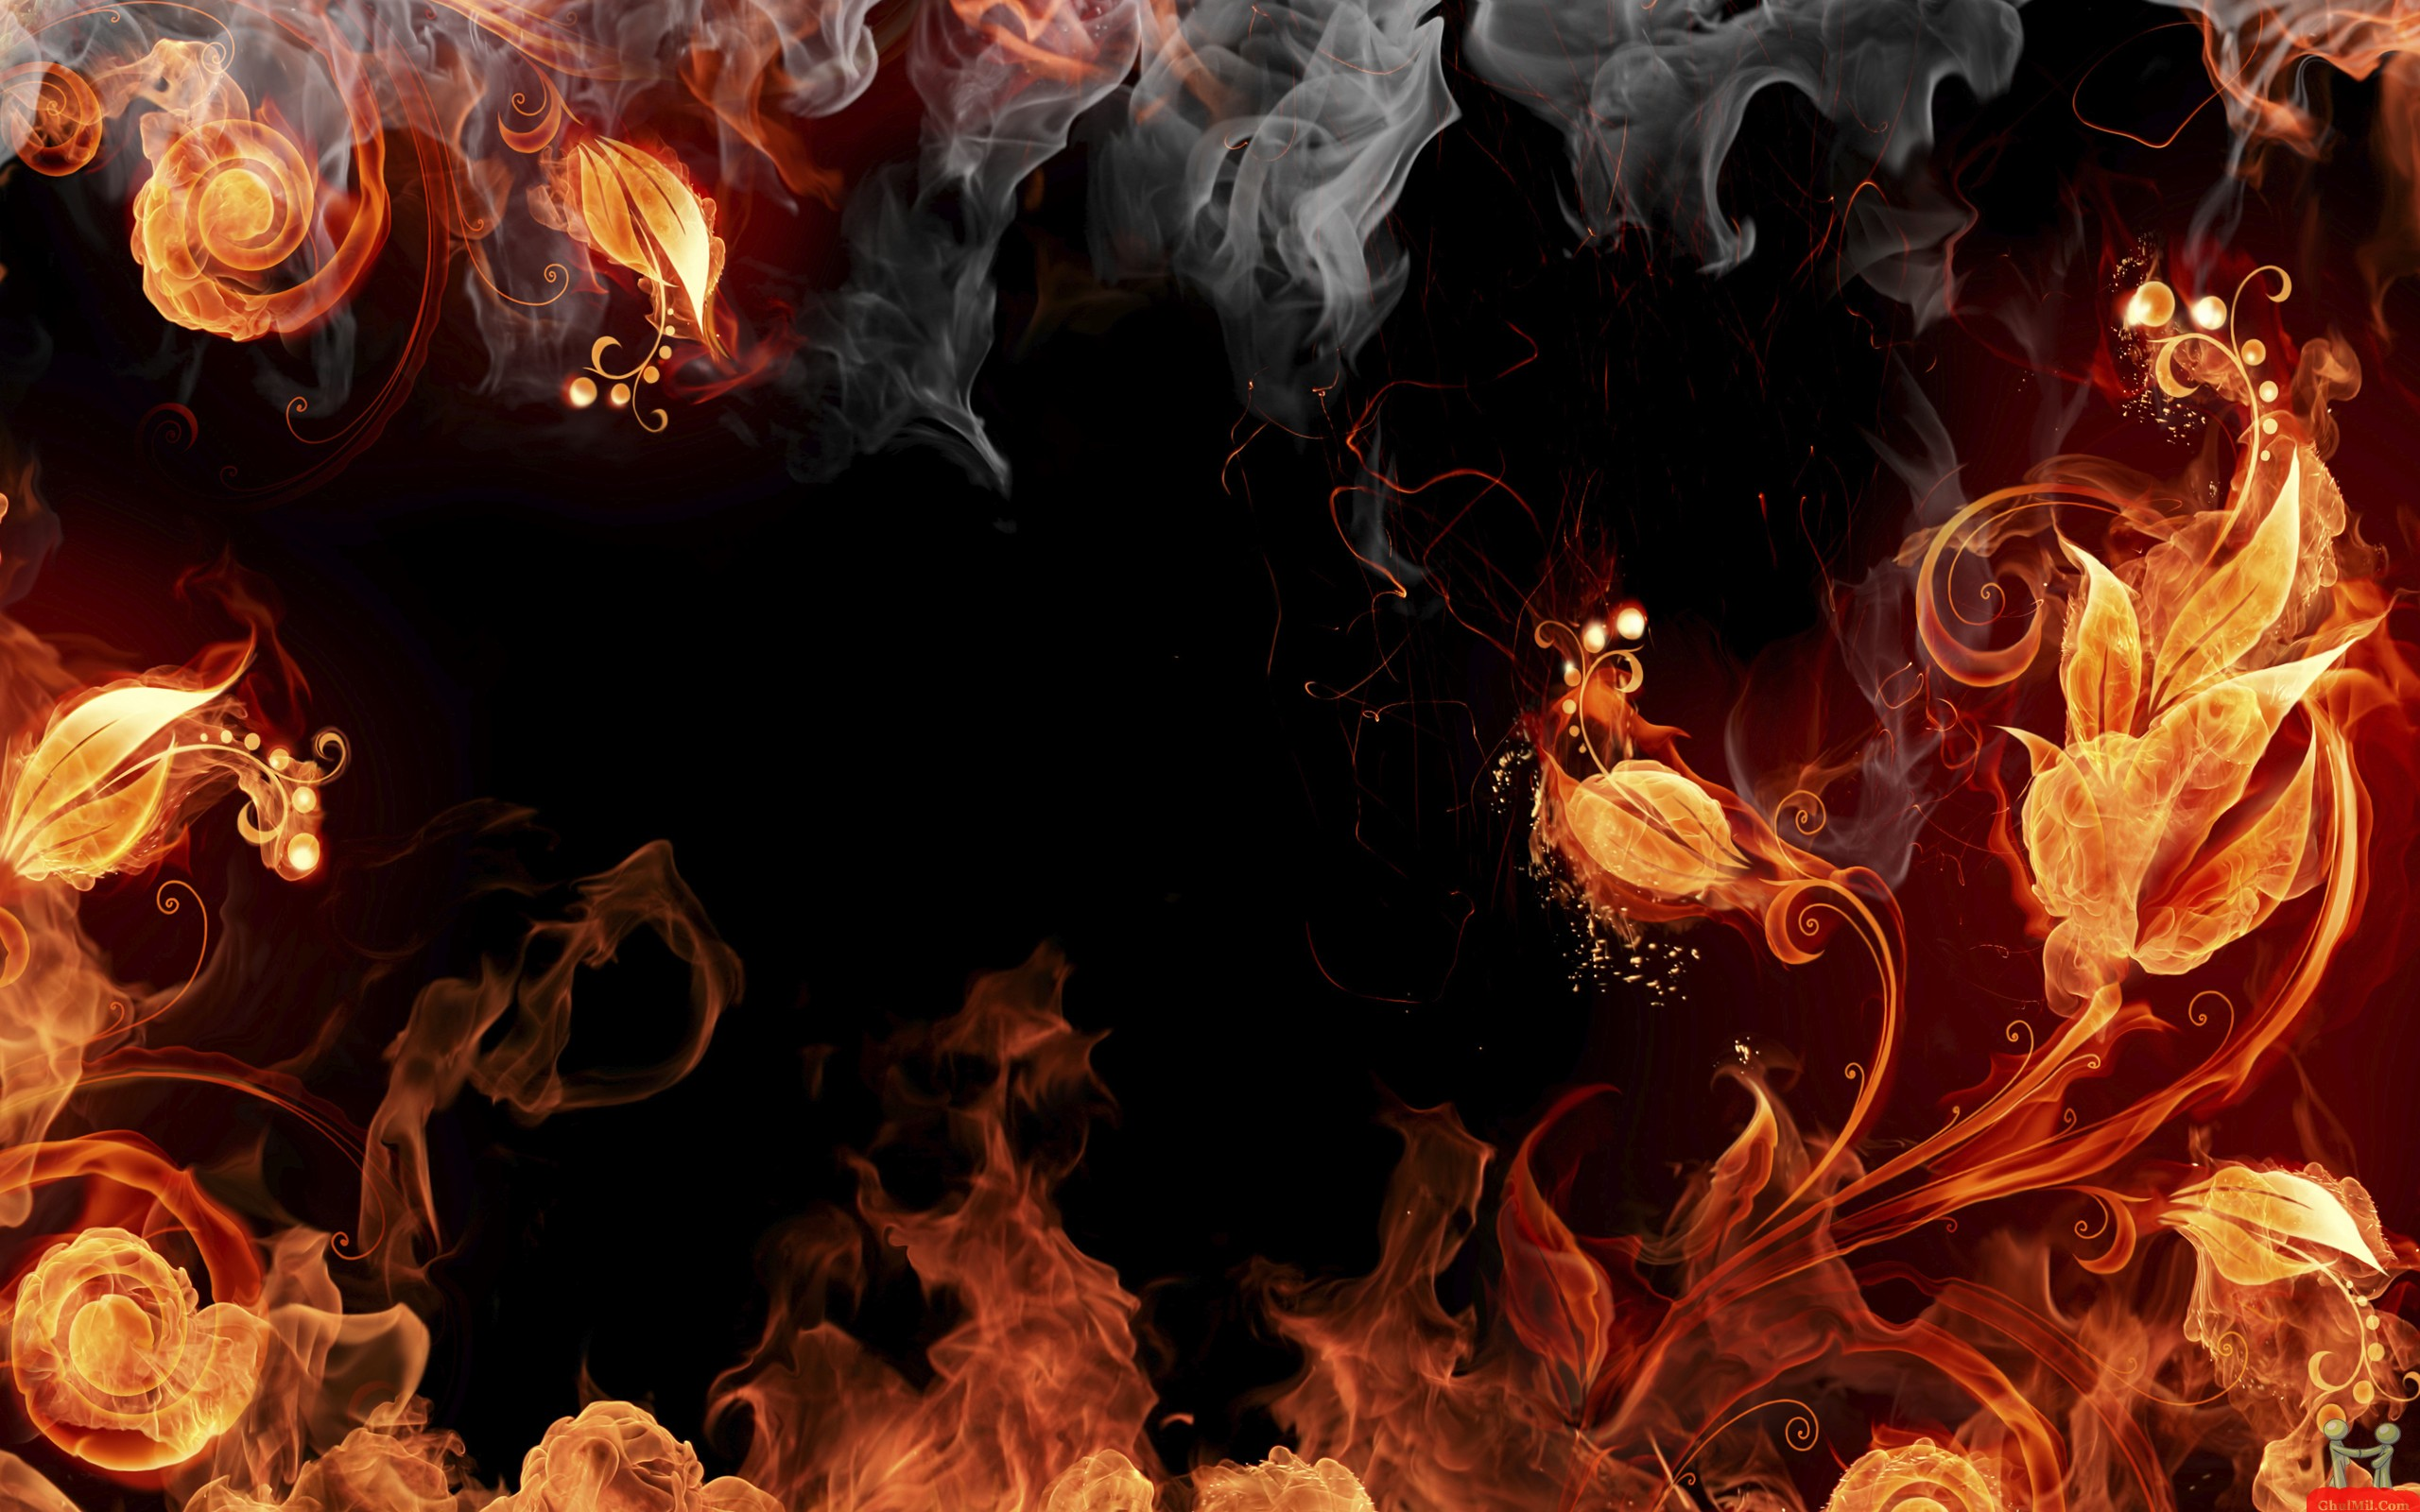 3D Fire Leaves HD Wallpapers For Desktop E Entertainment 2560x1600